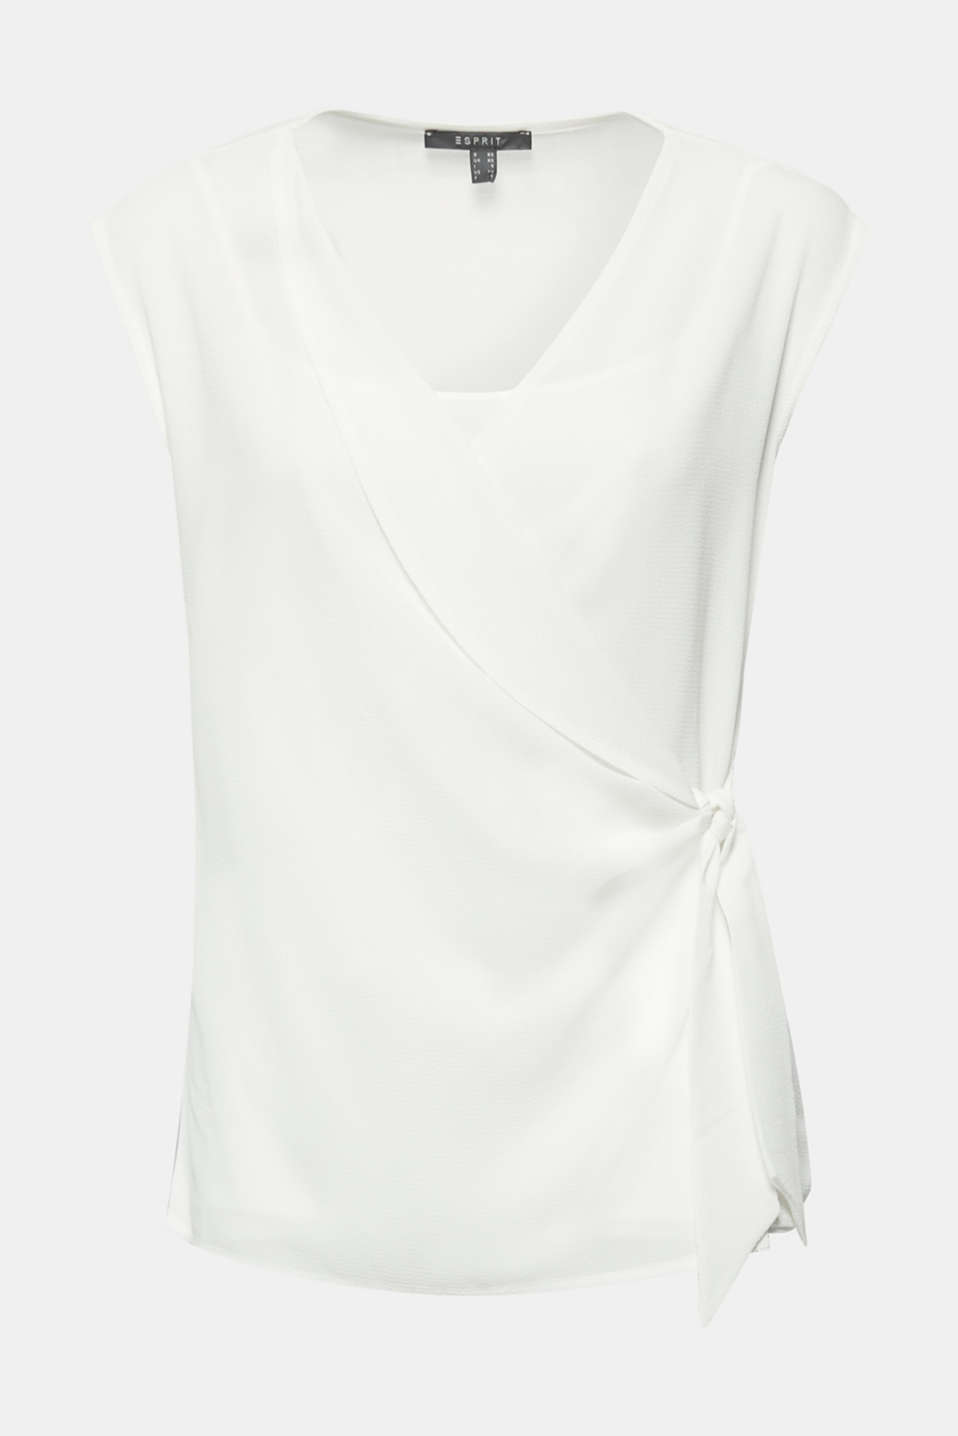 2-in-1 blouse top with wrap effect, OFF WHITE, detail image number 6